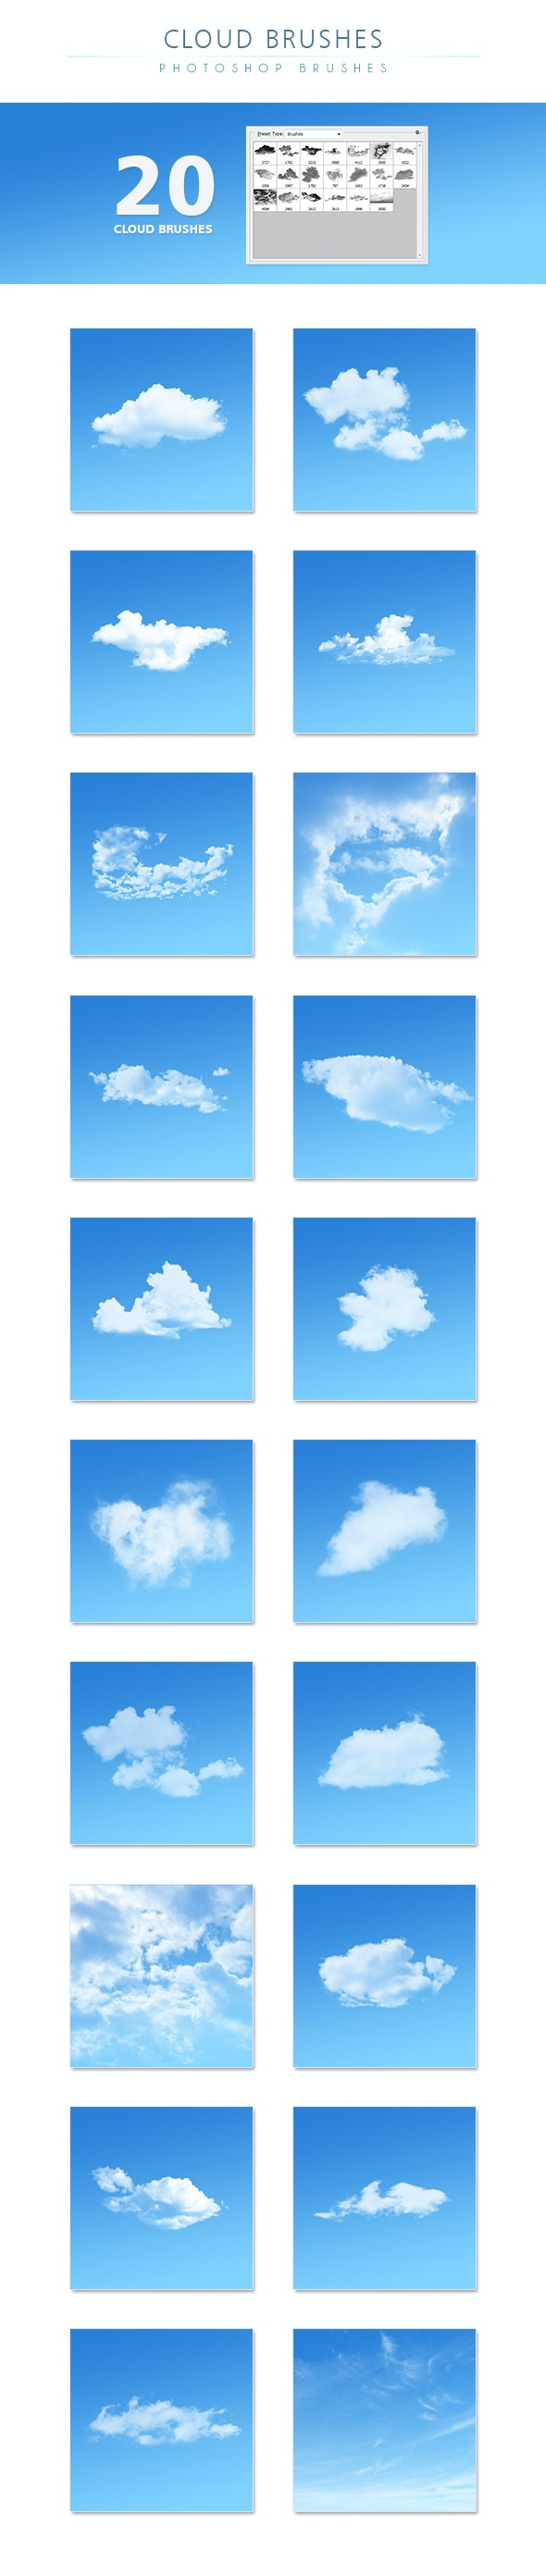 Cloud Brushes - Texture Brushes